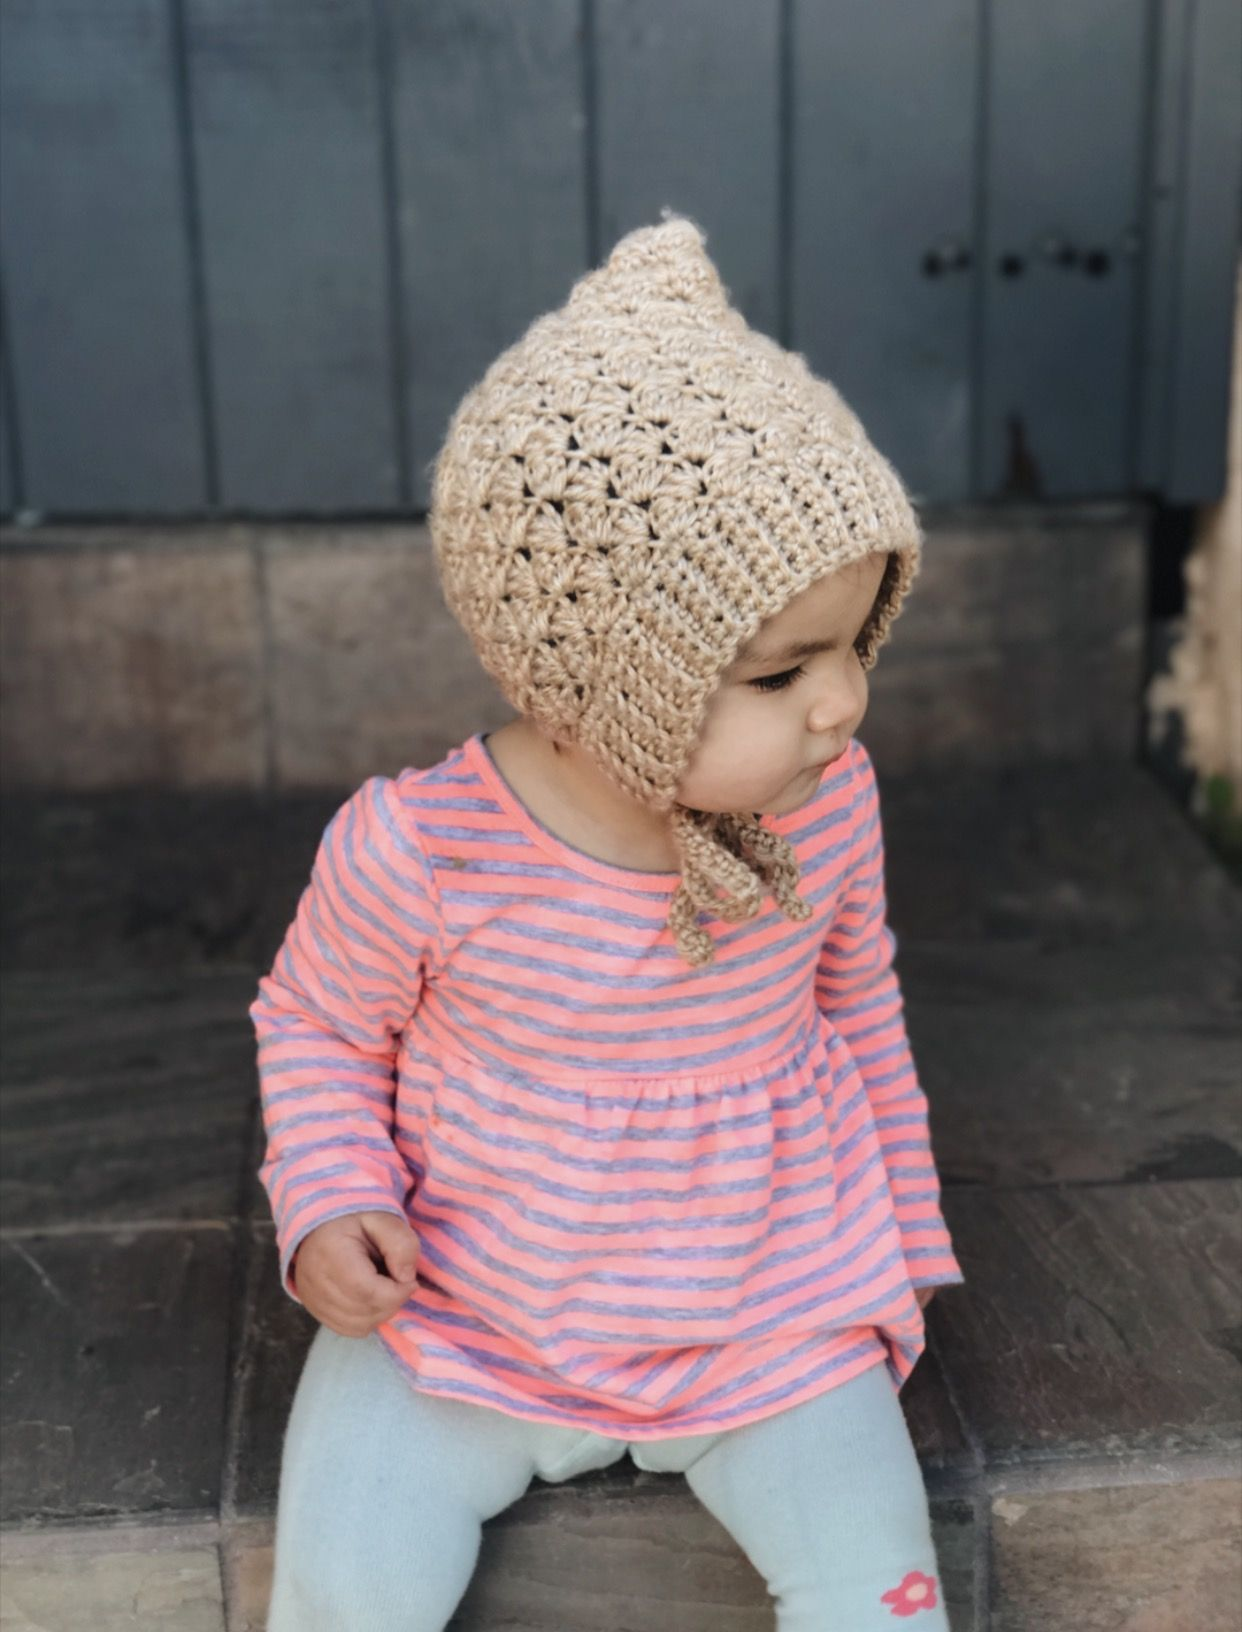 light brown baby cotton handmade pixie hat in bamboo cotton or merino wool with faux fur pom pom Crochet Baby bonnet Newborn Photo Prop.